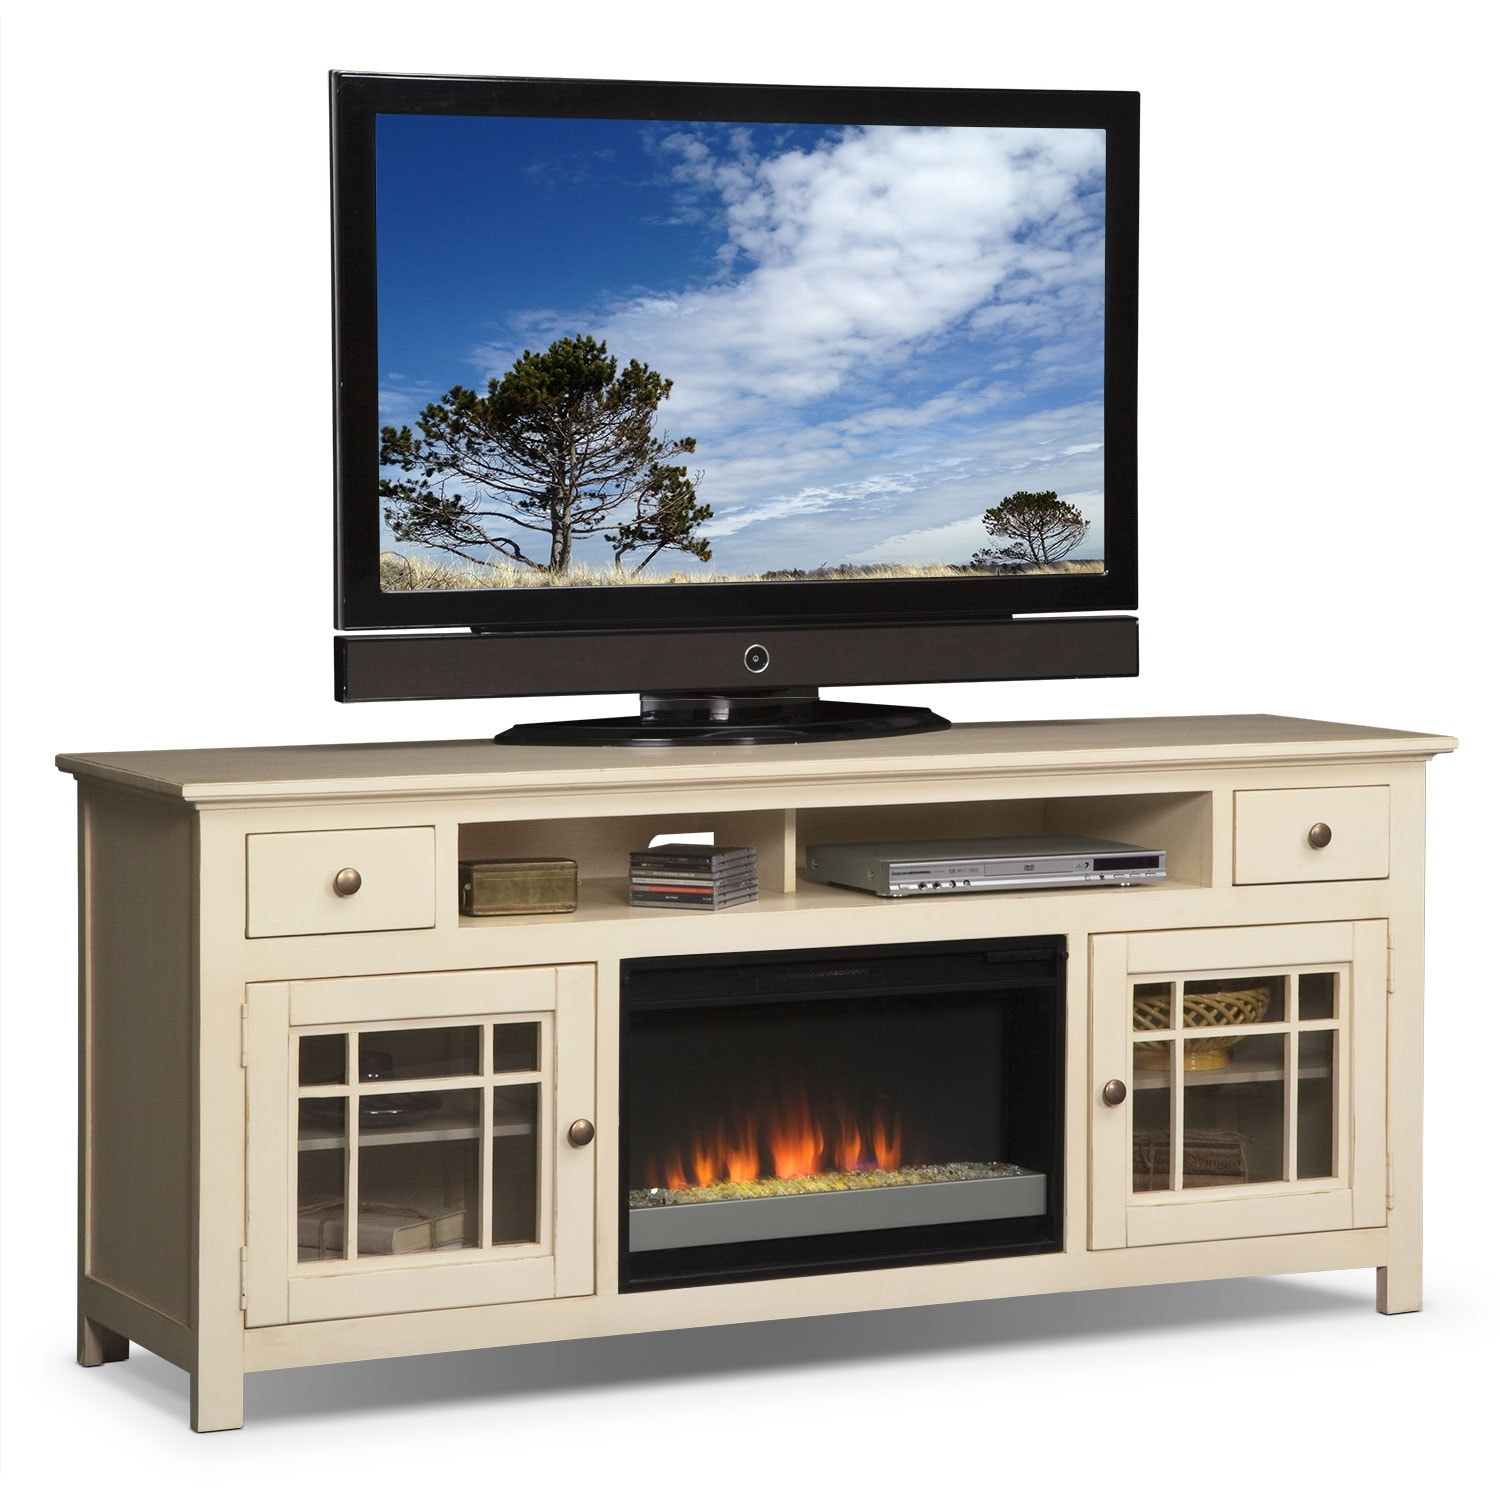 Merrick 74u0026quot; Fireplace TV Stand with Contemporary Insert ...